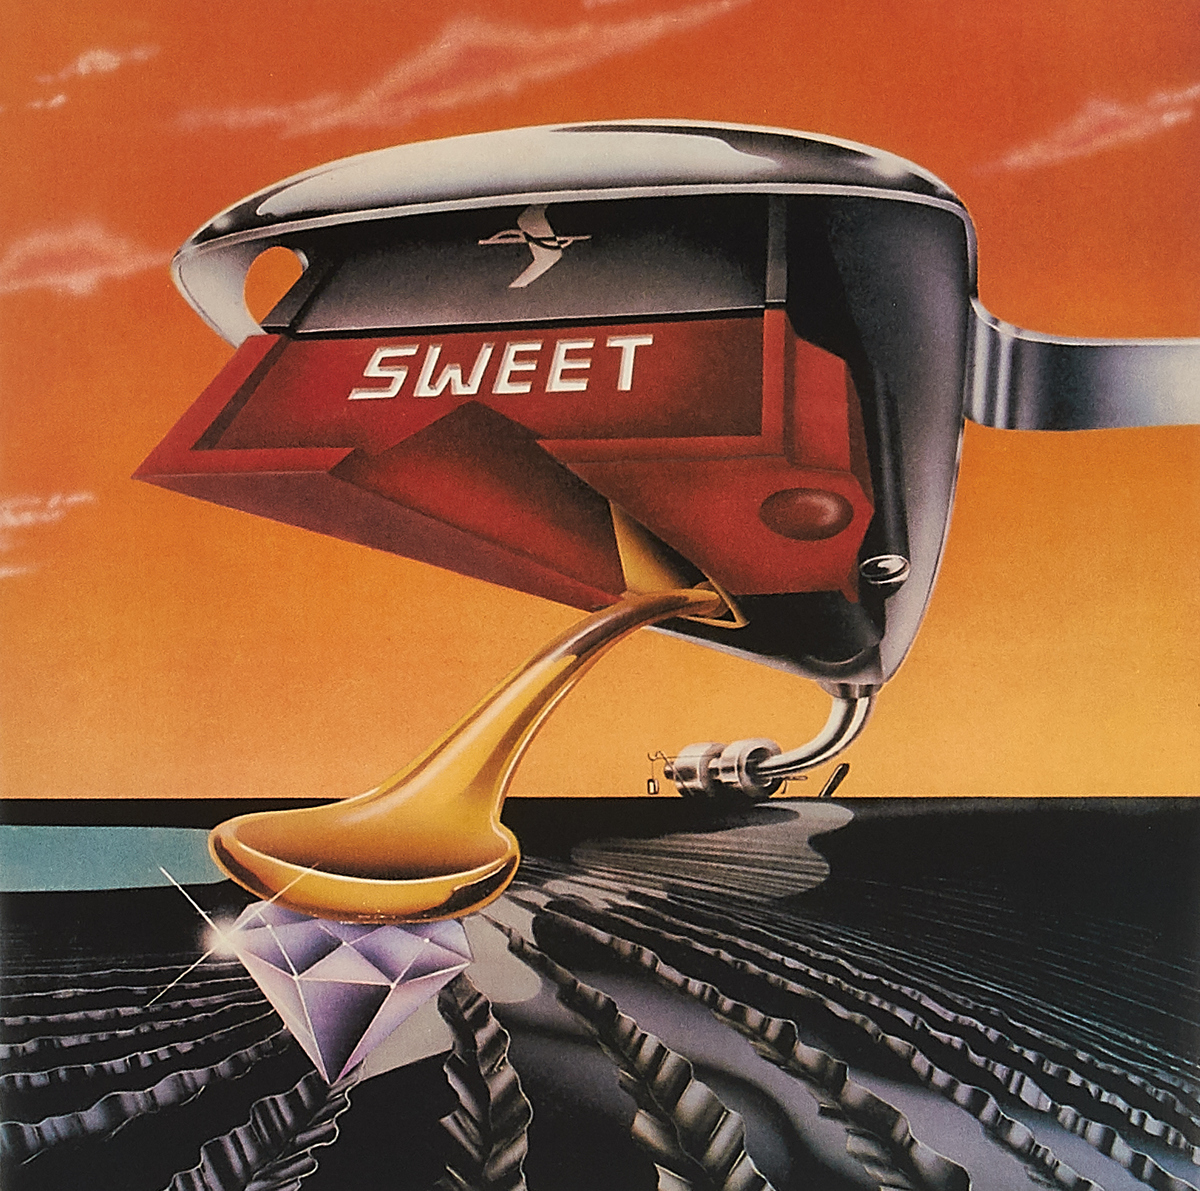 Sweet Sweet. Off The Record (New Vinyl Edition) (LP) бленда для объектива sigma lh780 03